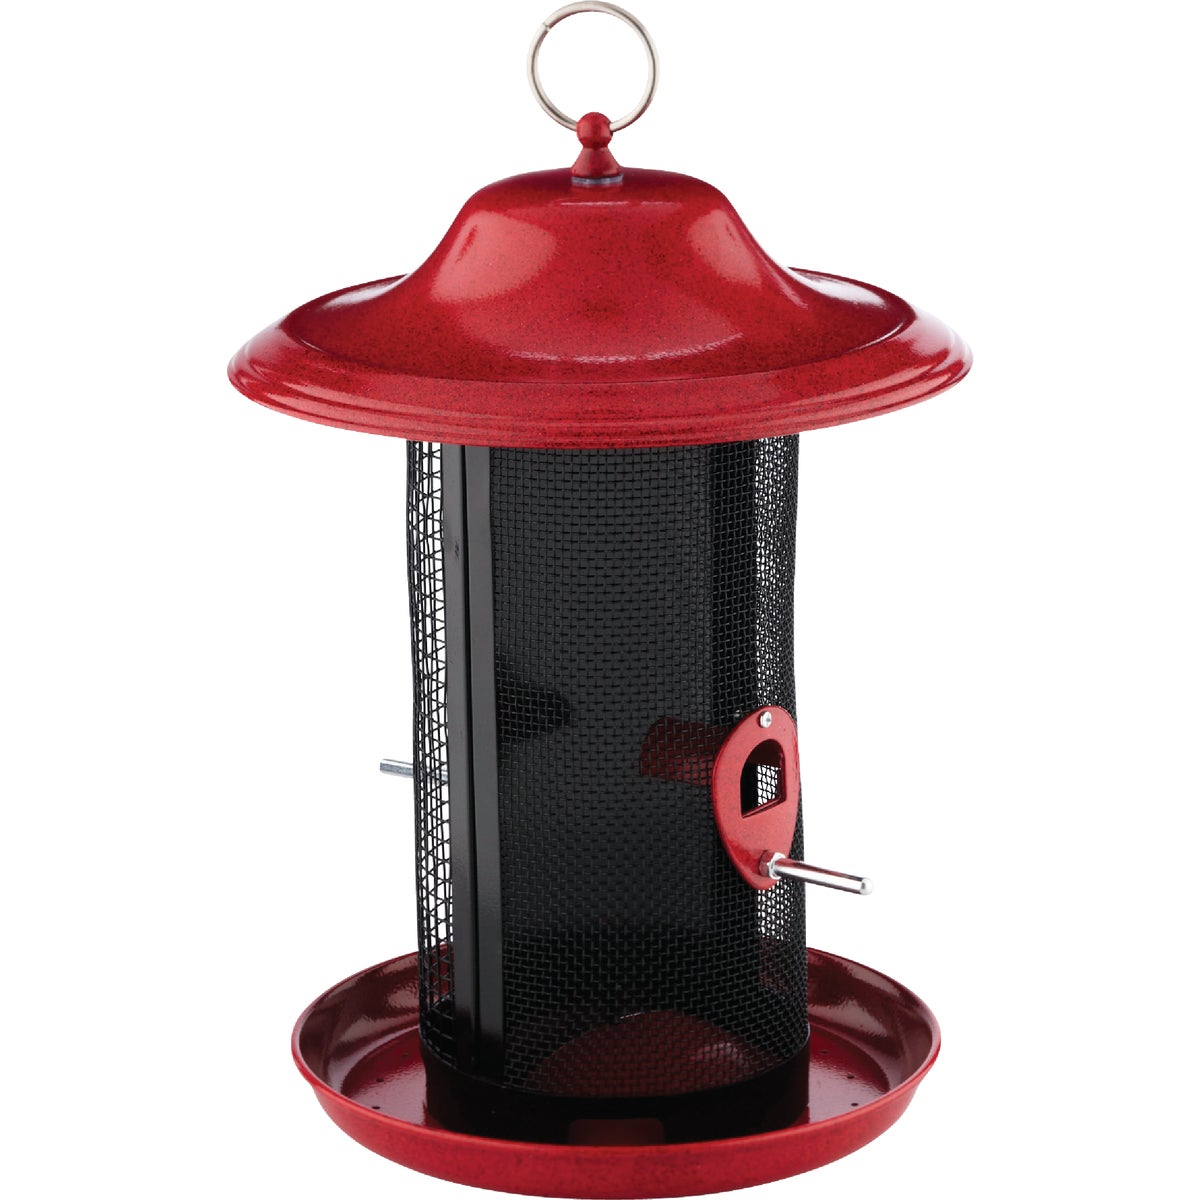 DUAL CHAMBER SEED FEEDER - 38199 by Hiatt Mfg